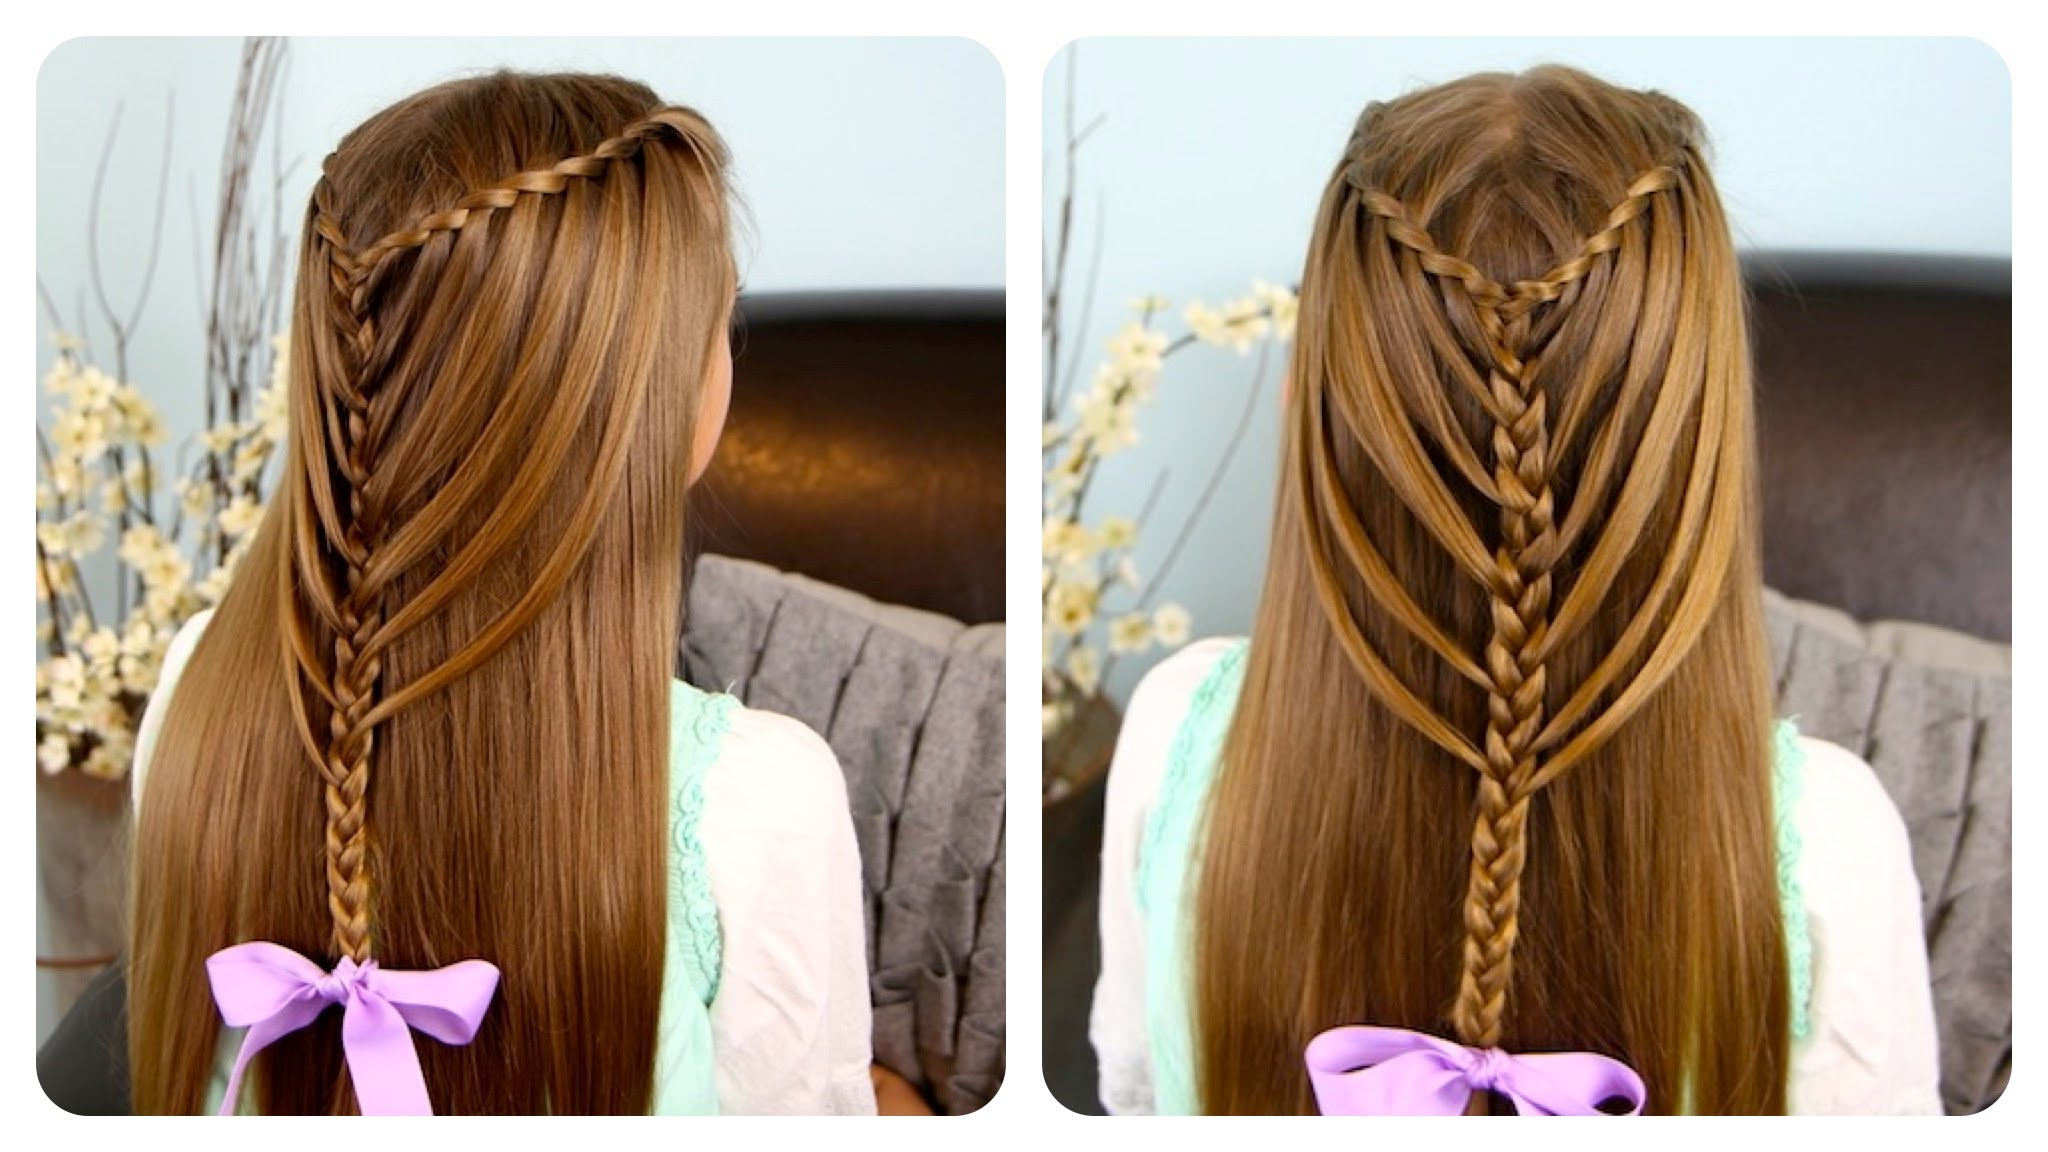 20 Spectacular Mermaid Hairstyles That Will Get You Noticed Regarding Latest Flawless Mermaid Tail Braid Hairstyles (View 2 of 20)